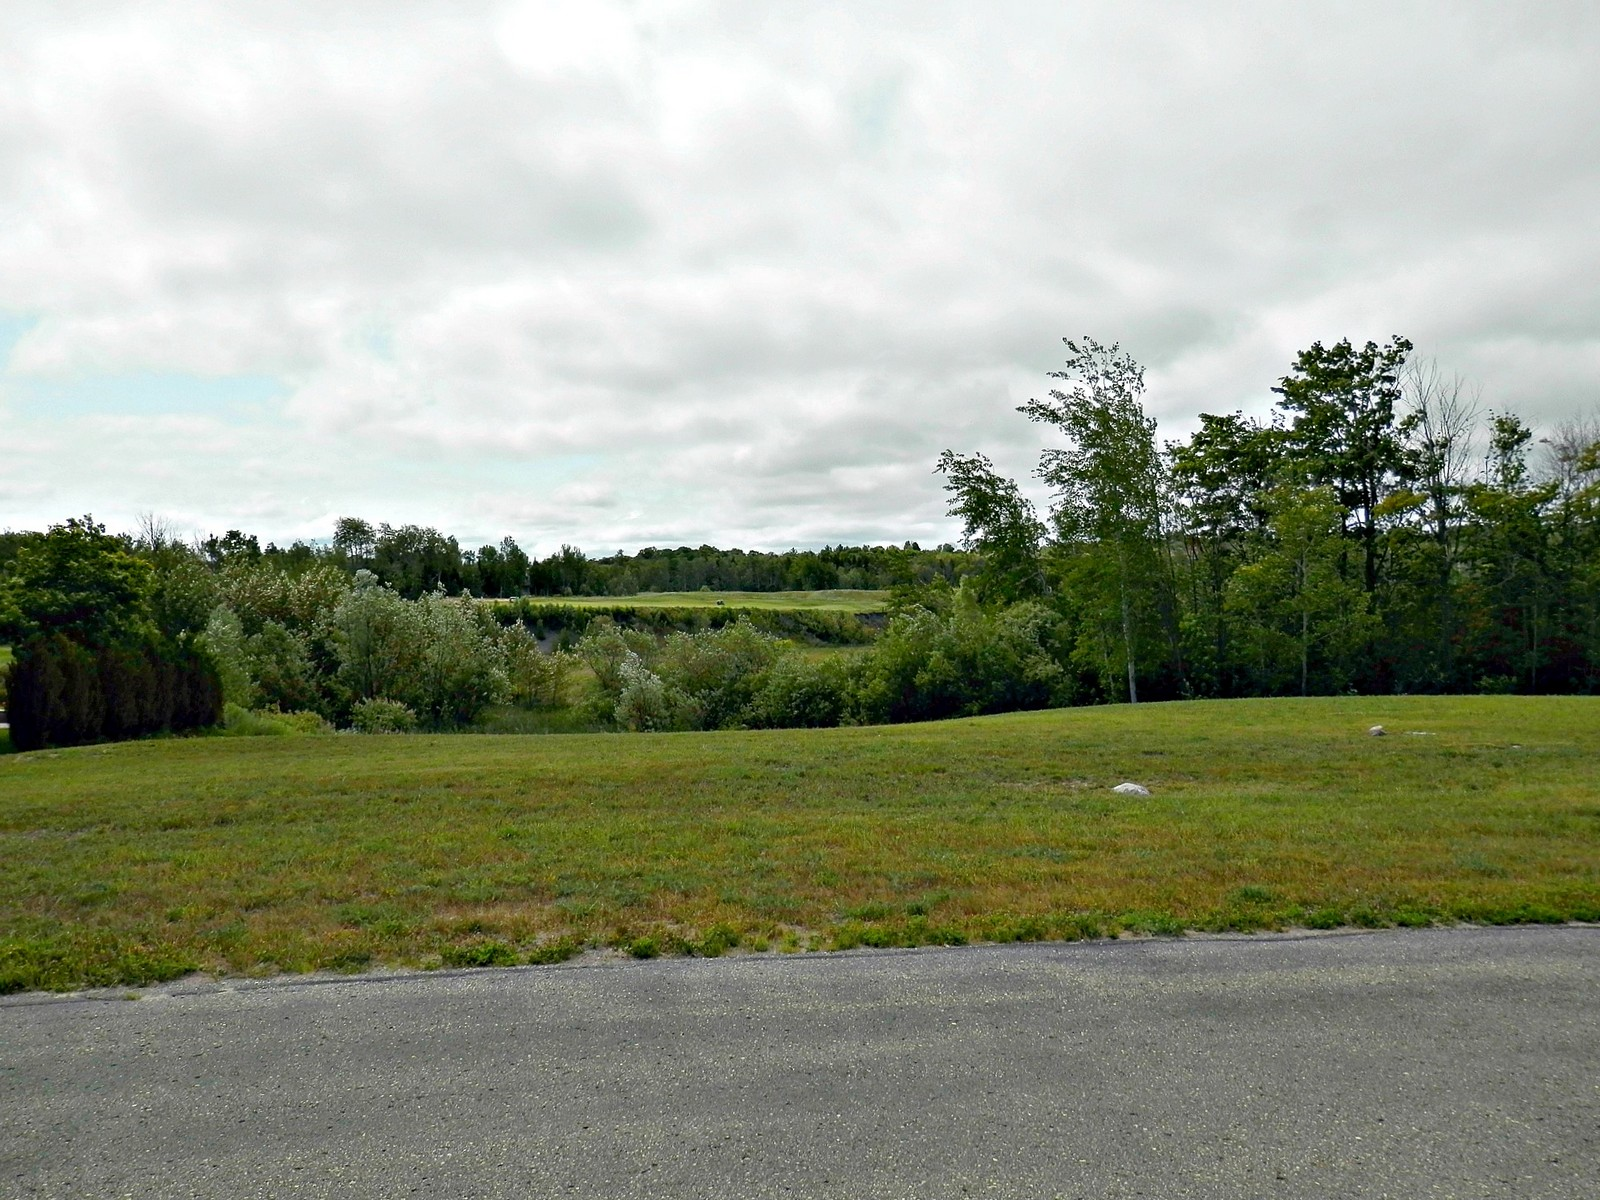 Land for Sale at Quarry Golf Course View Home Site 6283 Quarry View Court Bay Harbor, Michigan, 49770 United States